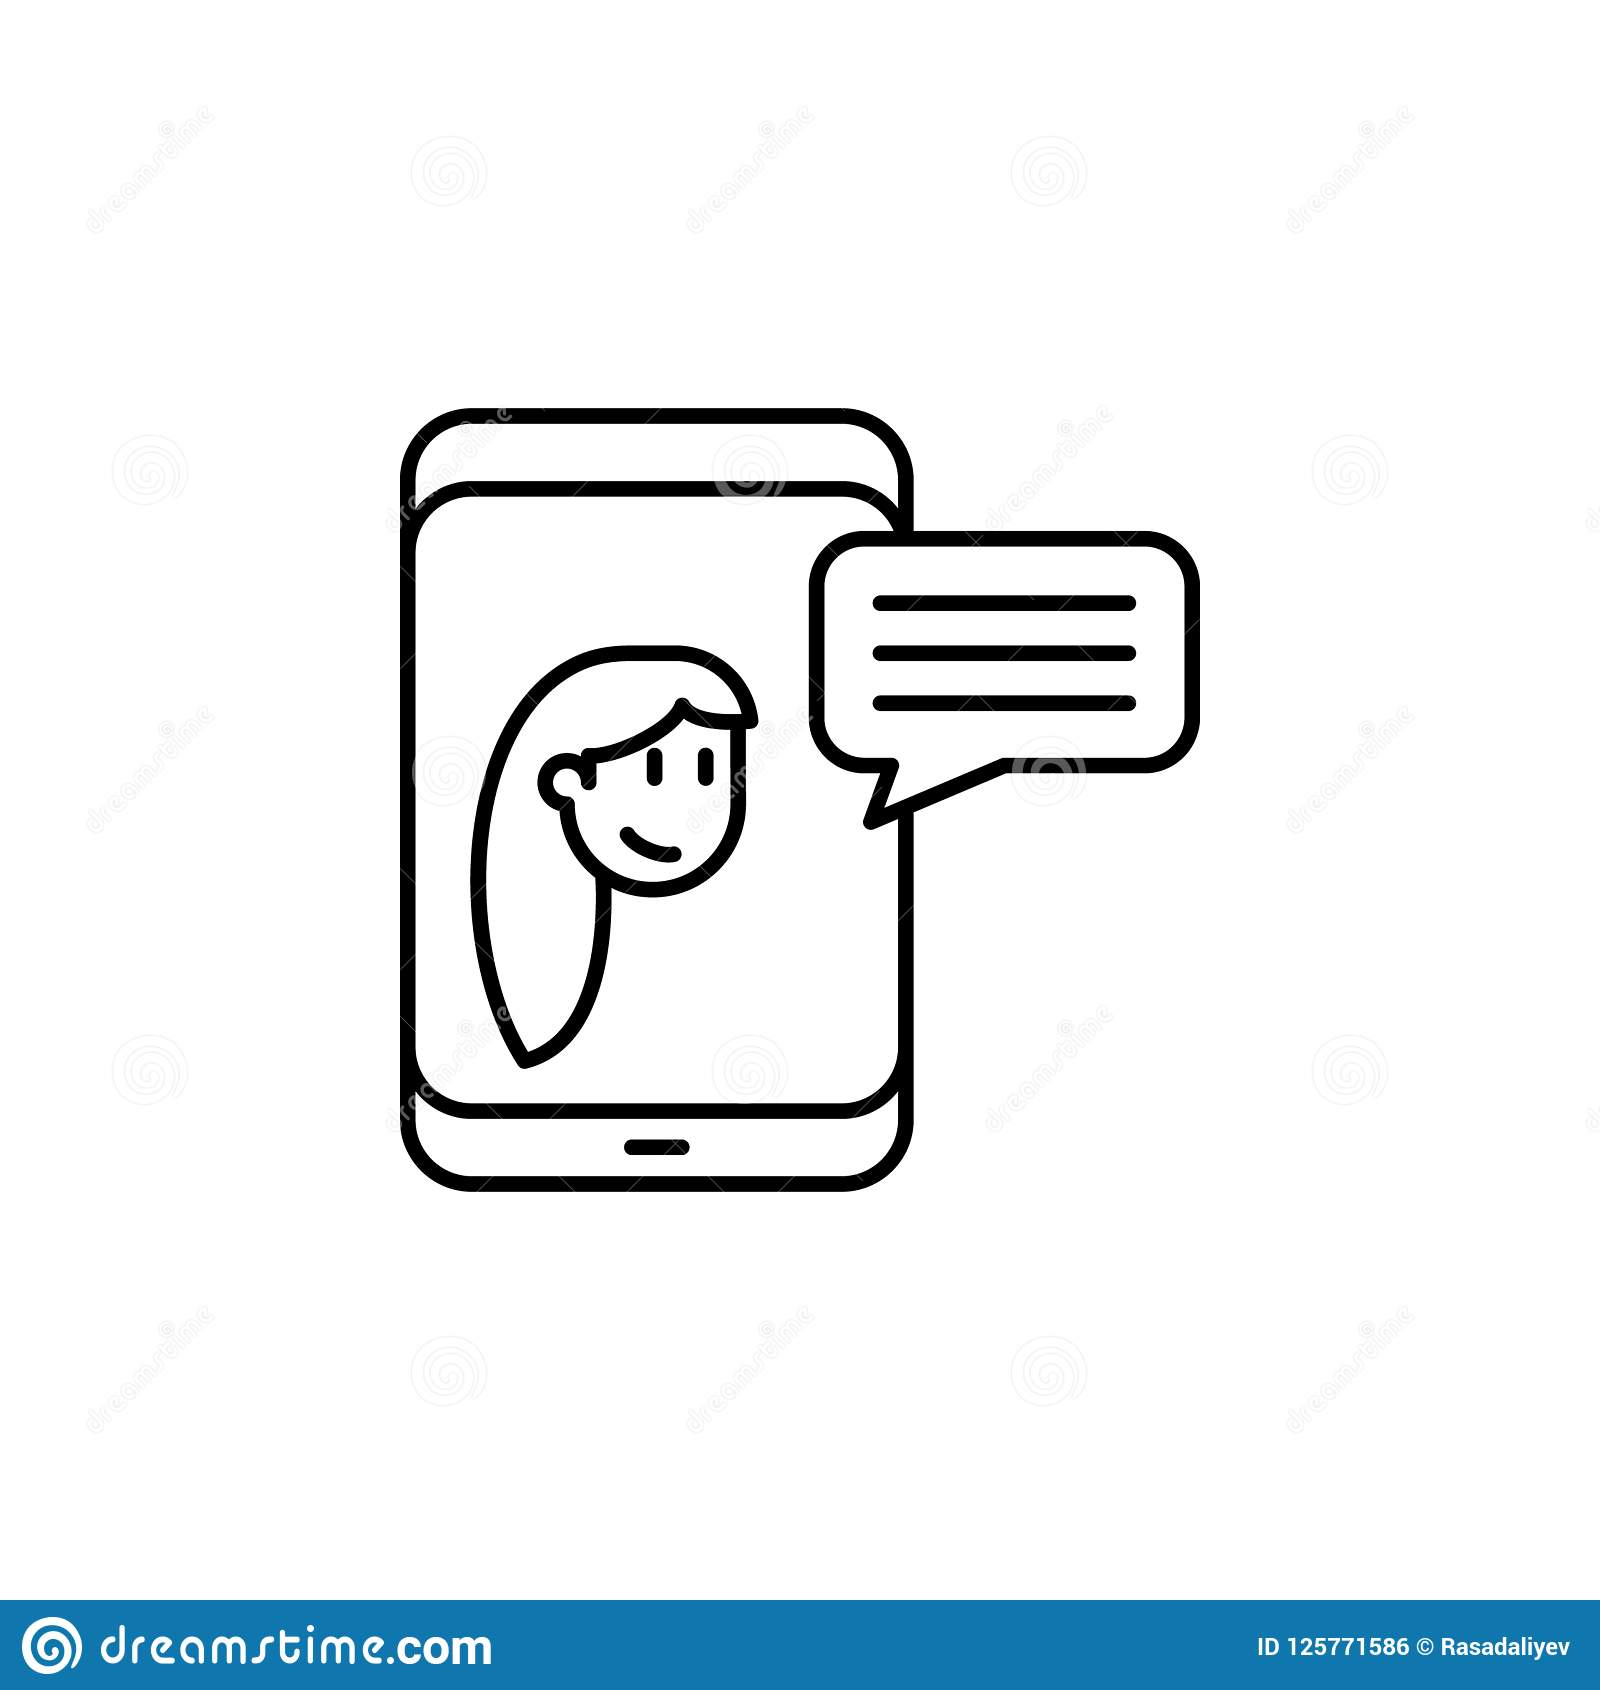 Chatting With Friend Icon  Element Of Friendship Icon For Mobile